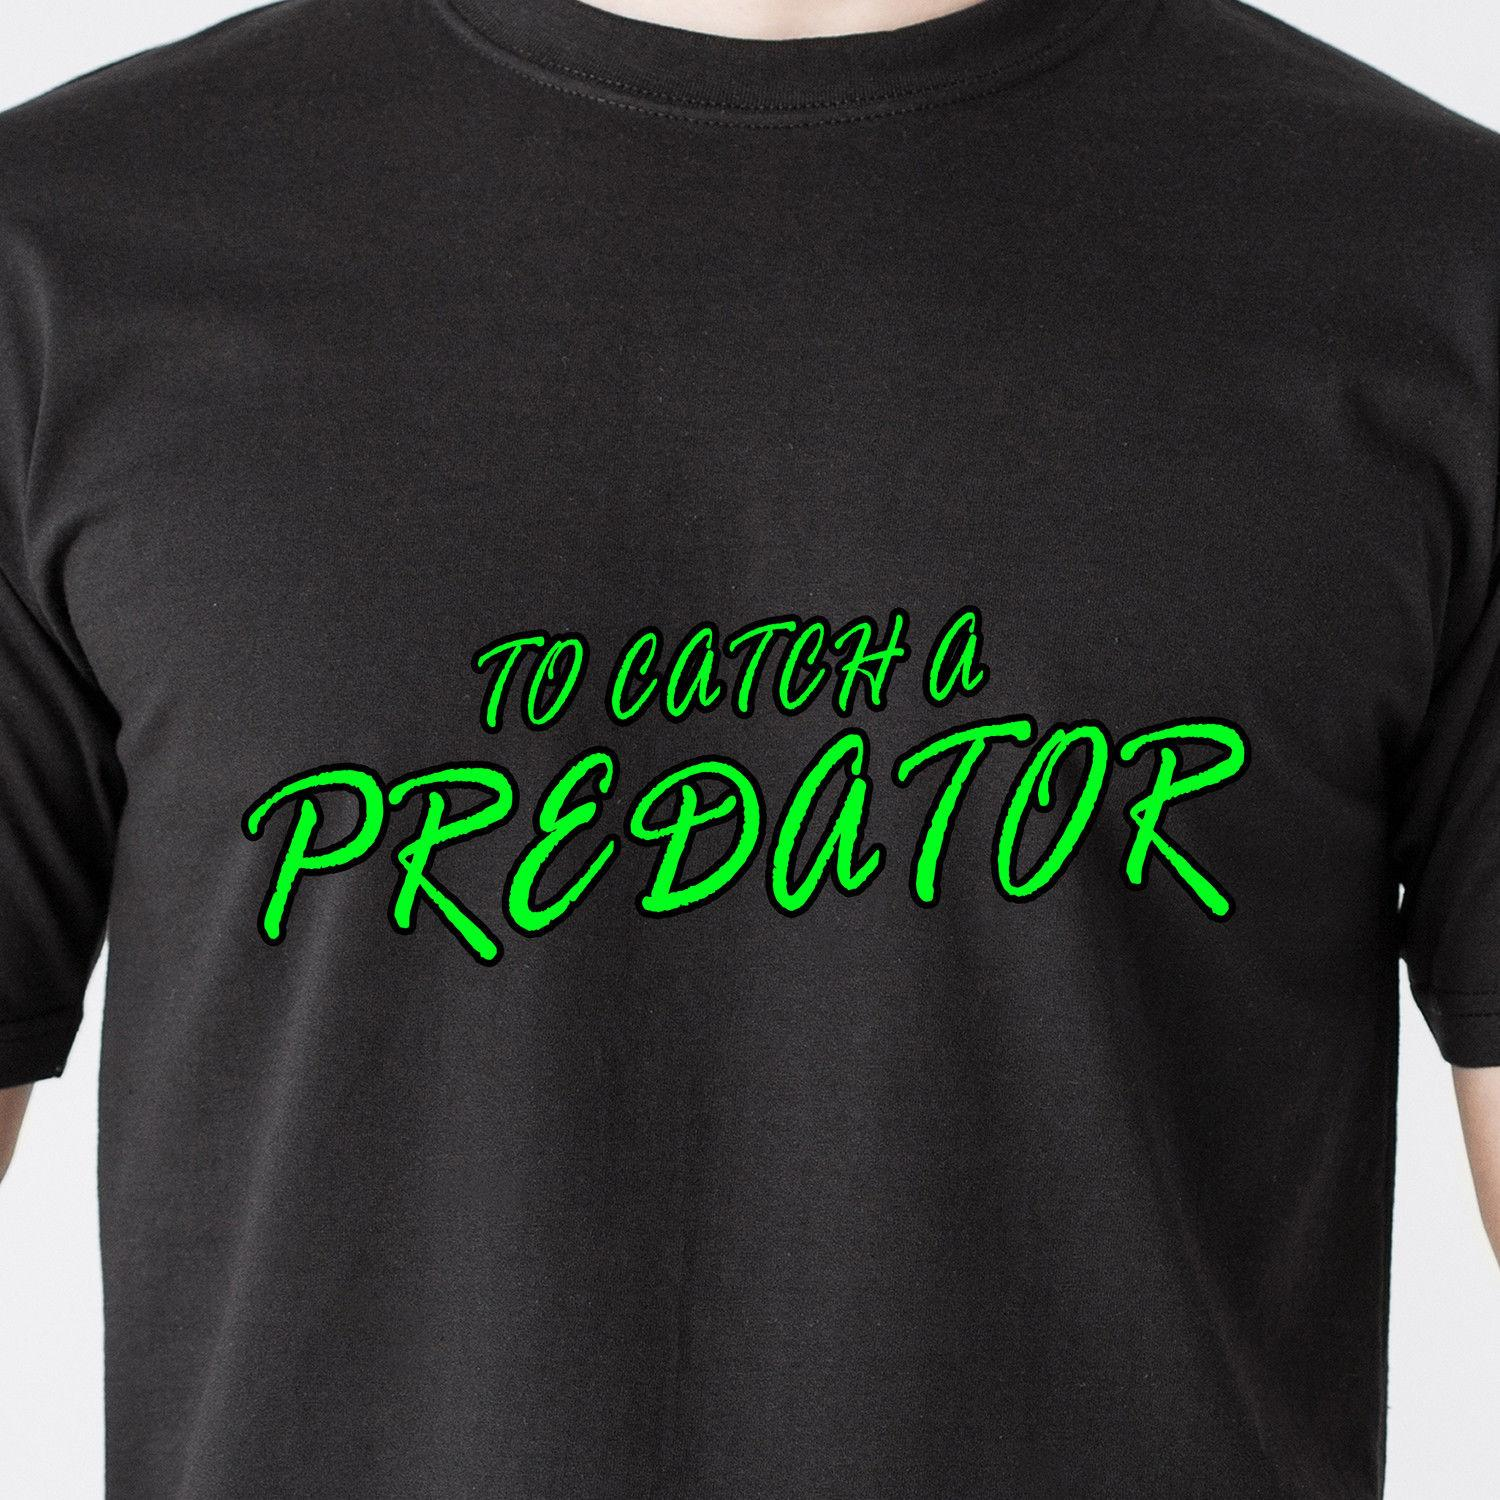 44940abd TO CATCH A PREDATOR Dateline 13 Police Jail Loosers Retro Vintage Funny T  Shirt Funny Unisex Casual Tshirt Top Make Your Own T Shirts T Shirt  Printers From ...